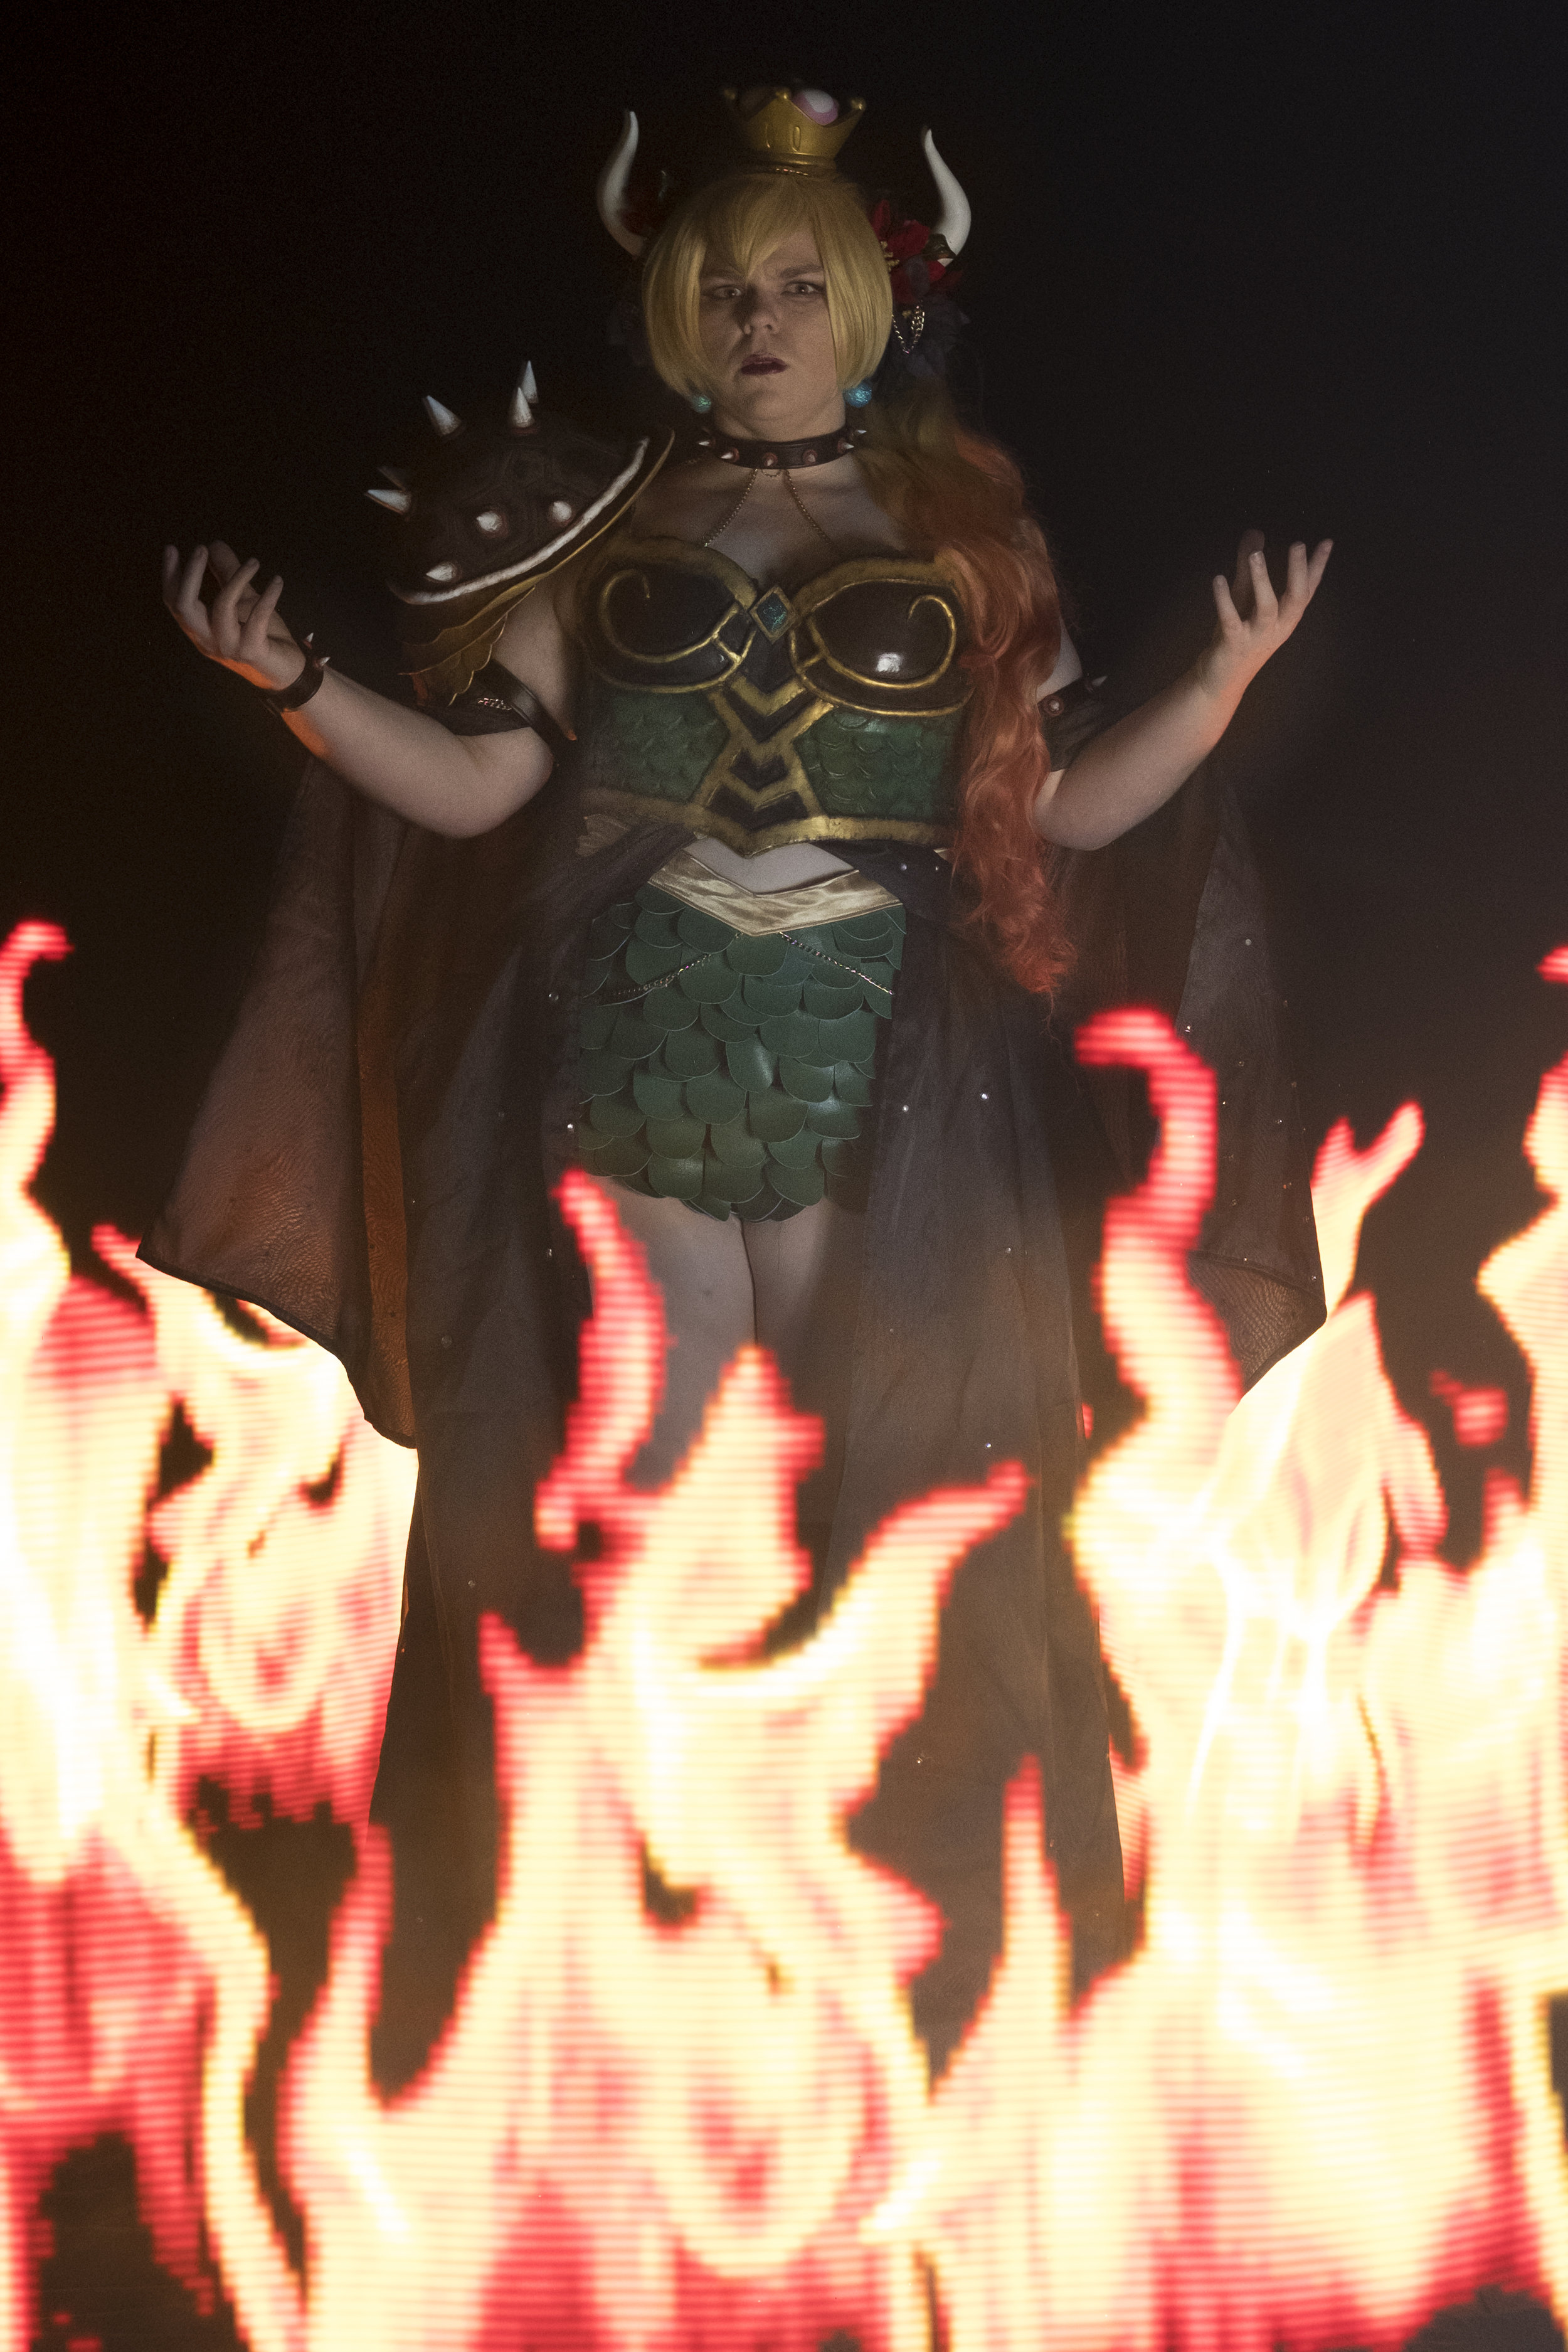 Tacocat Cosplay cosplaying as Hannah Alexander's Bowsette surrounded by light painted flames